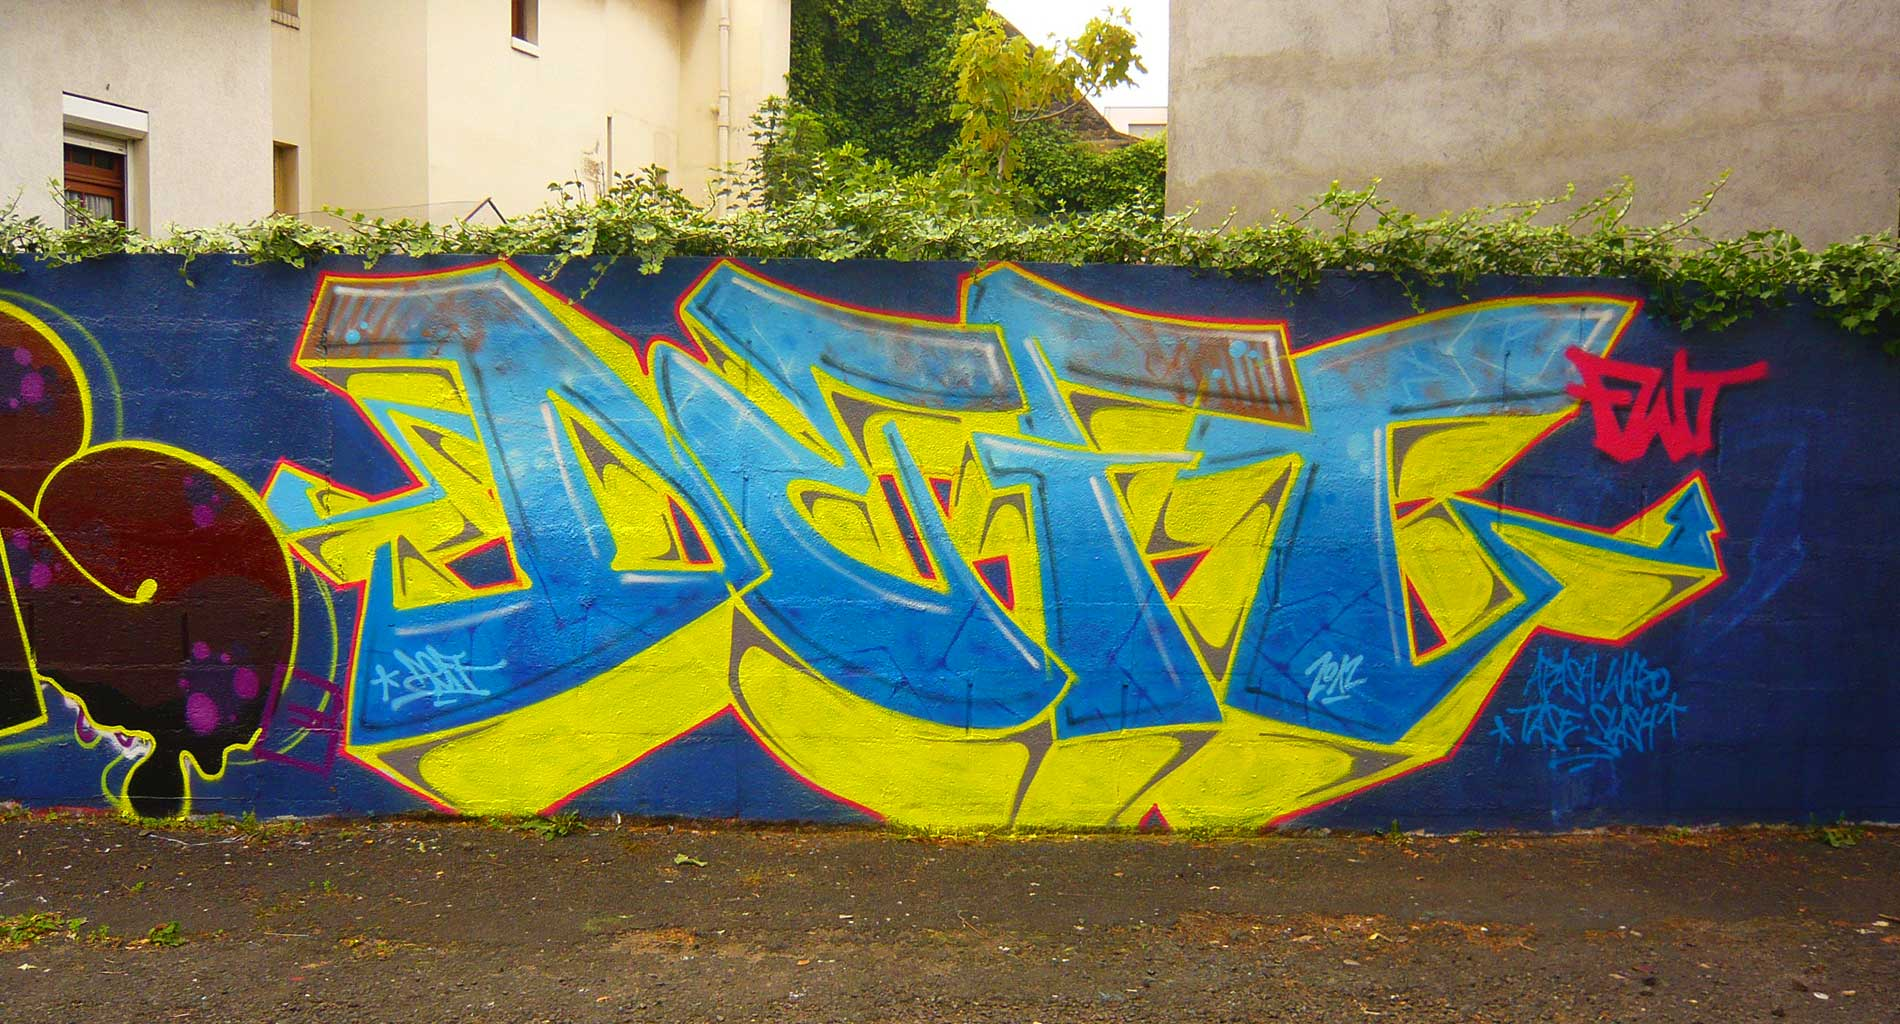 nouille_deft_graffiti_2